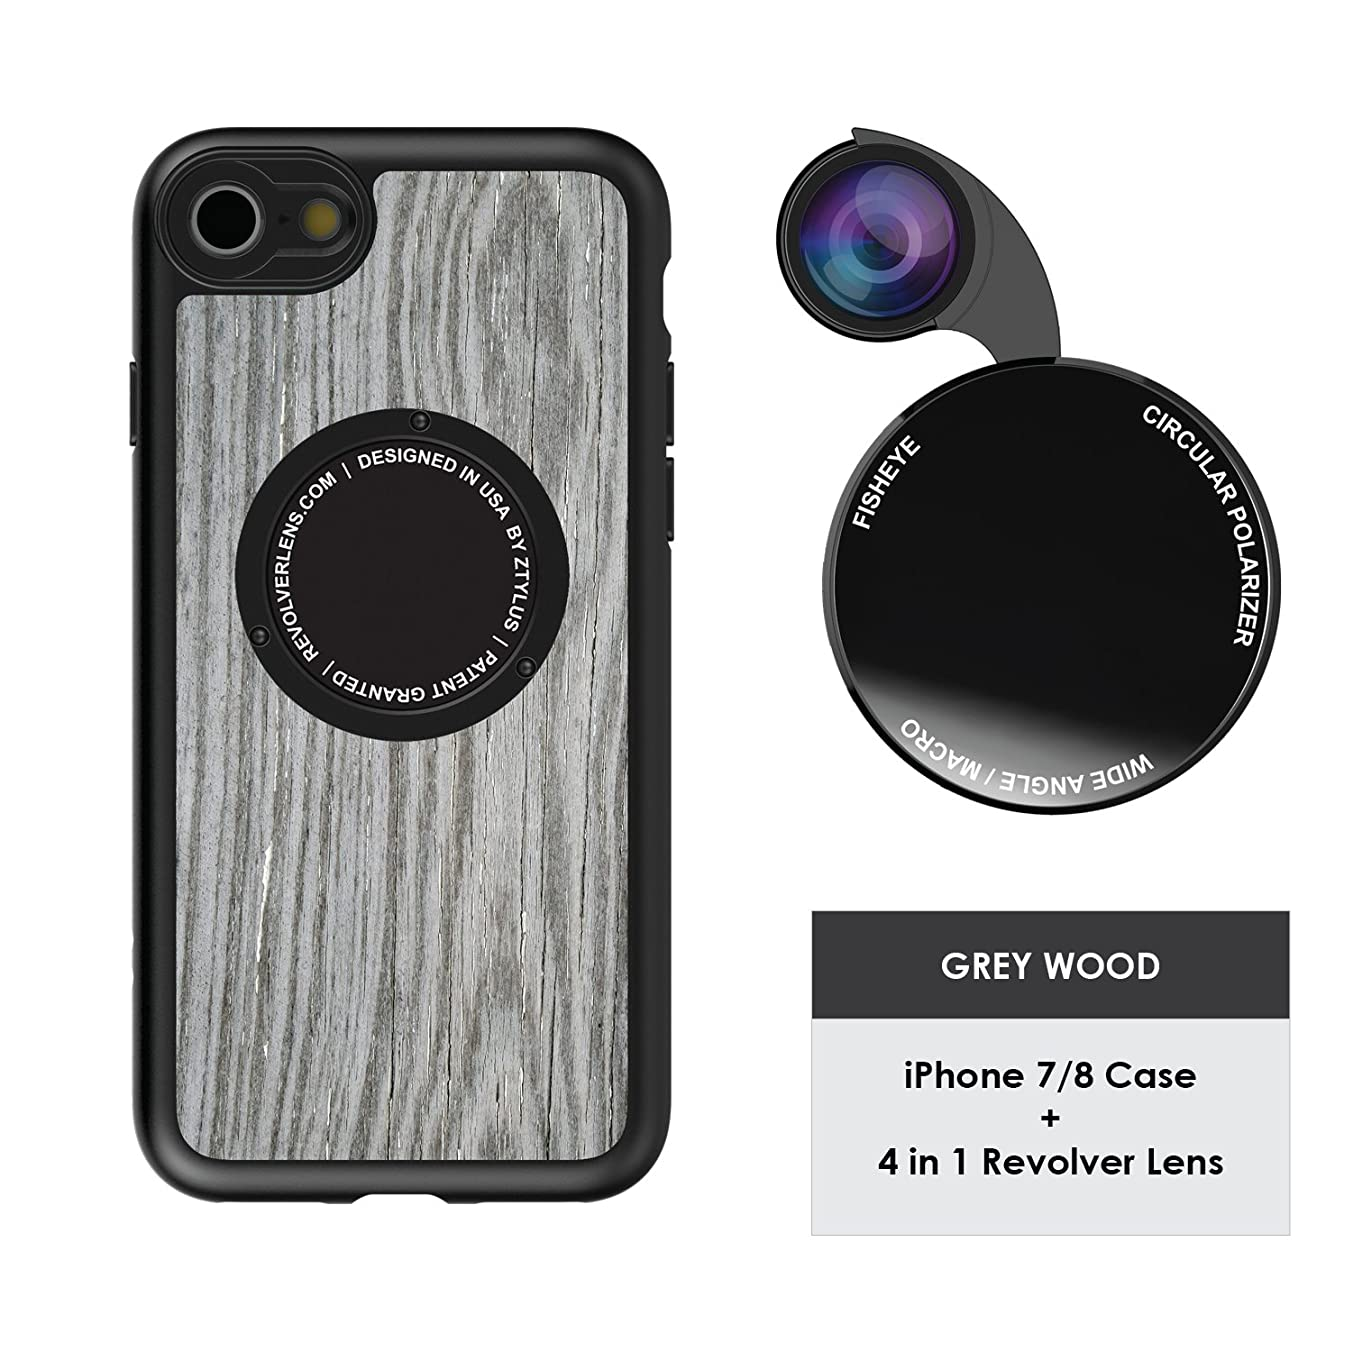 Ztylus Designer Revolver M Series Camera Kit: 4 in 1 Lens with Case for iPhone 7/8 – Fisheye Lens, Wide Angle Lens, Macro Lens, CPL (Grey Wood Pattern)